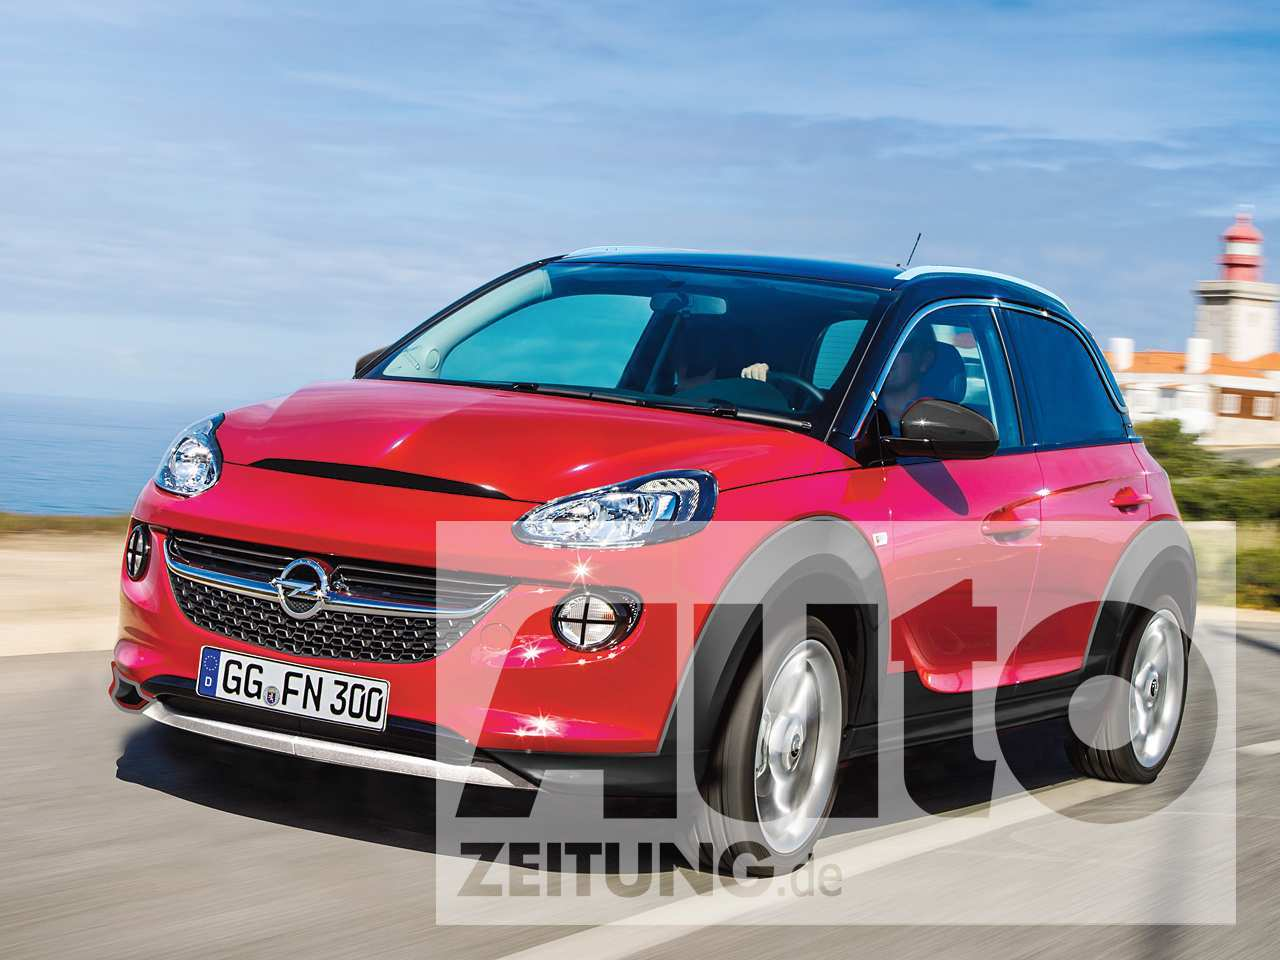 82 Concept of Opel Neuheiten 2020 Performance and New Engine with Opel Neuheiten 2020